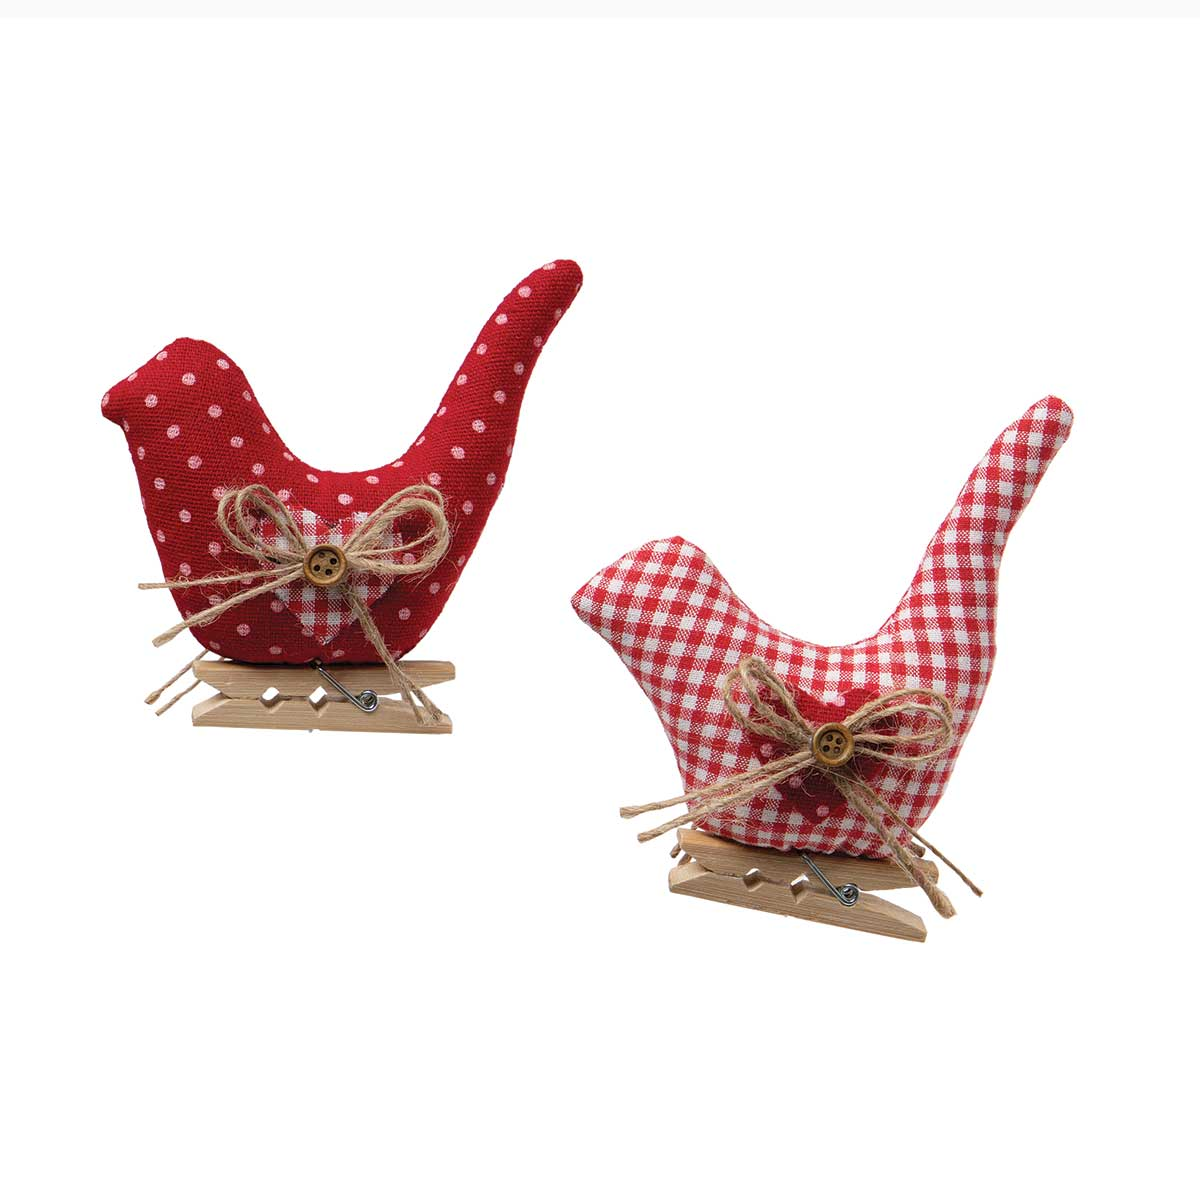 CLOTHES PIN BIRD RED/WHITE PLAID/PINDOT WITH BUTTON AND